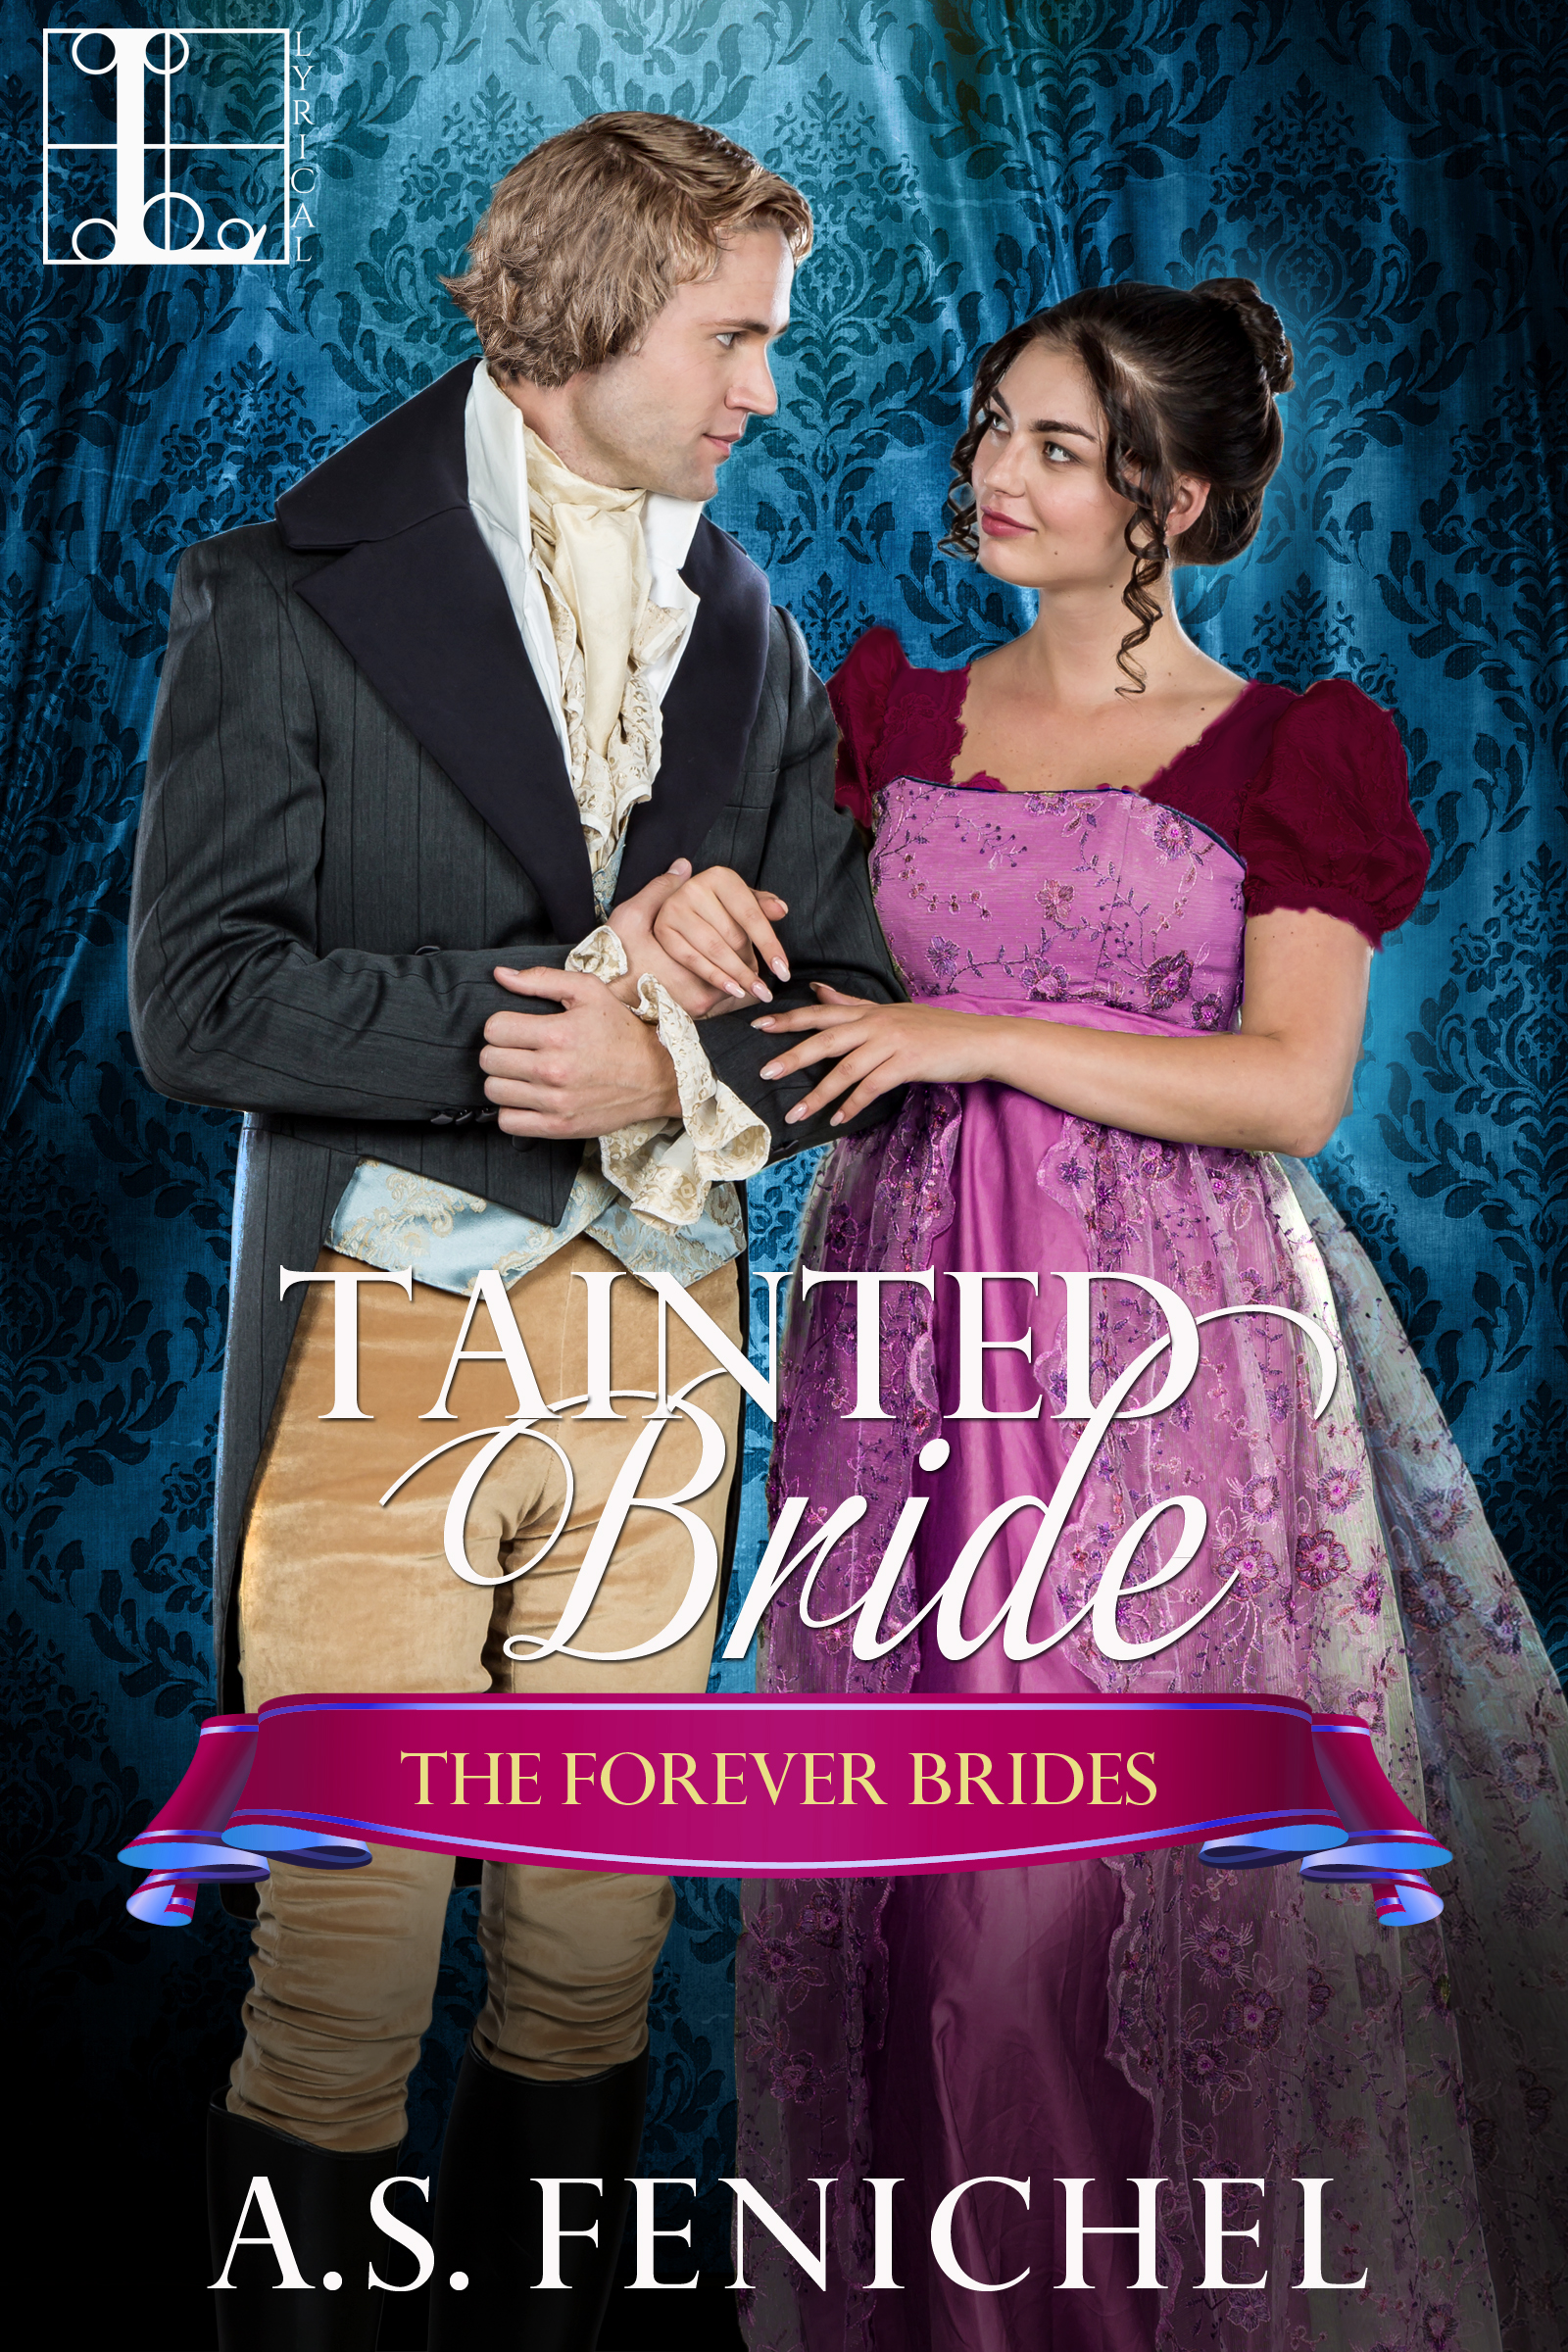 Tainted Brides